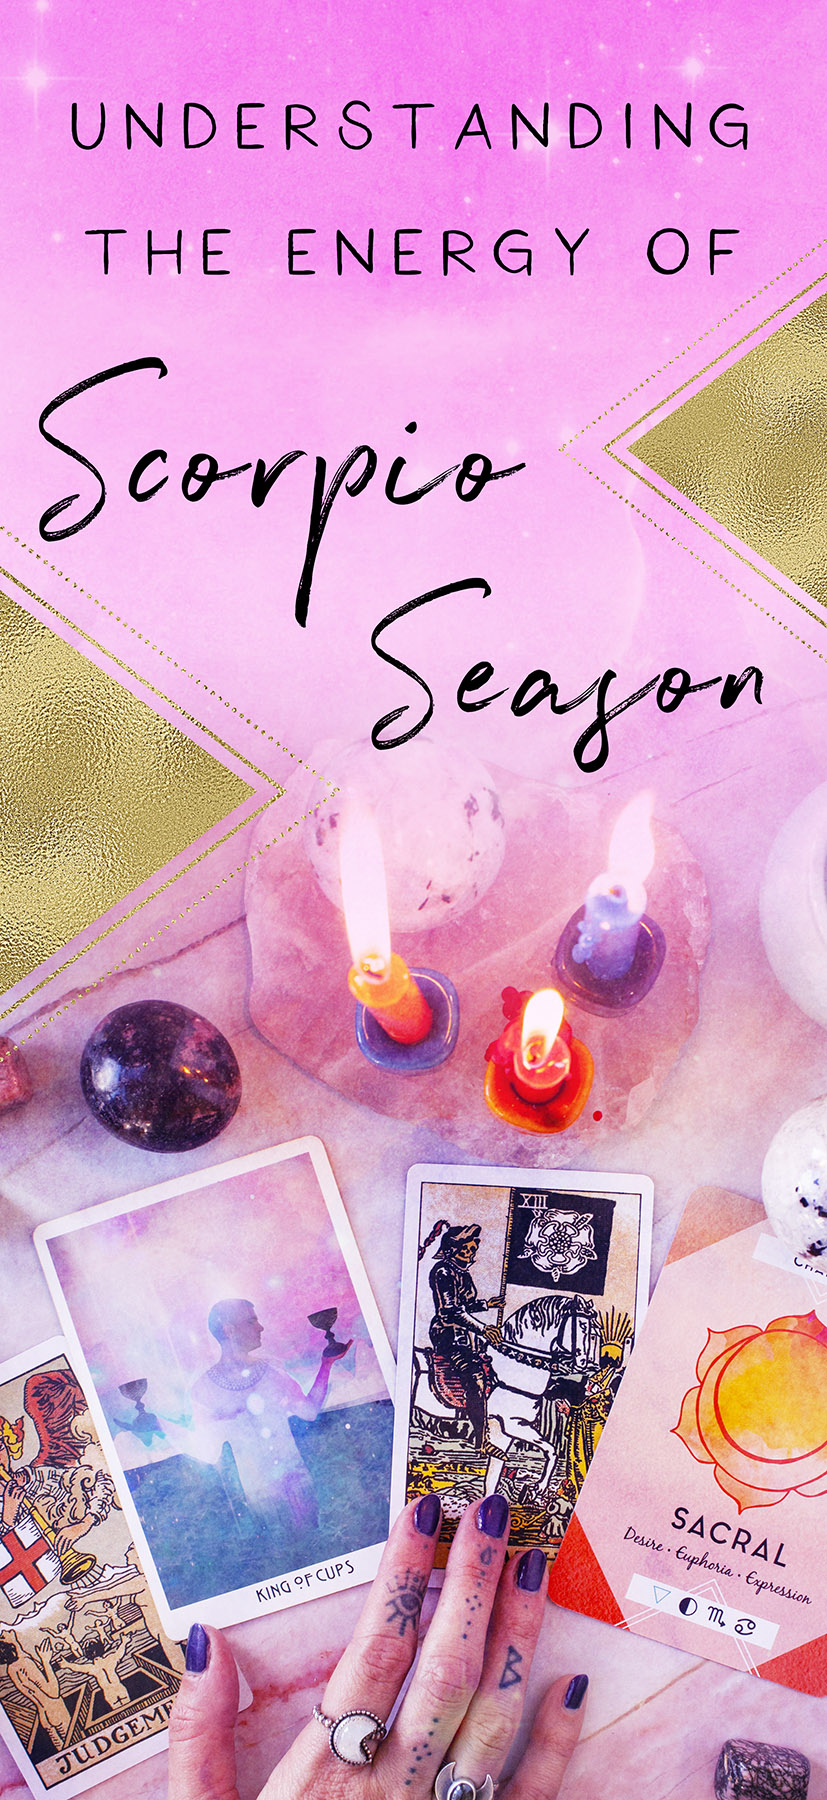 understanding the energy of scorpio season understanding scorpio